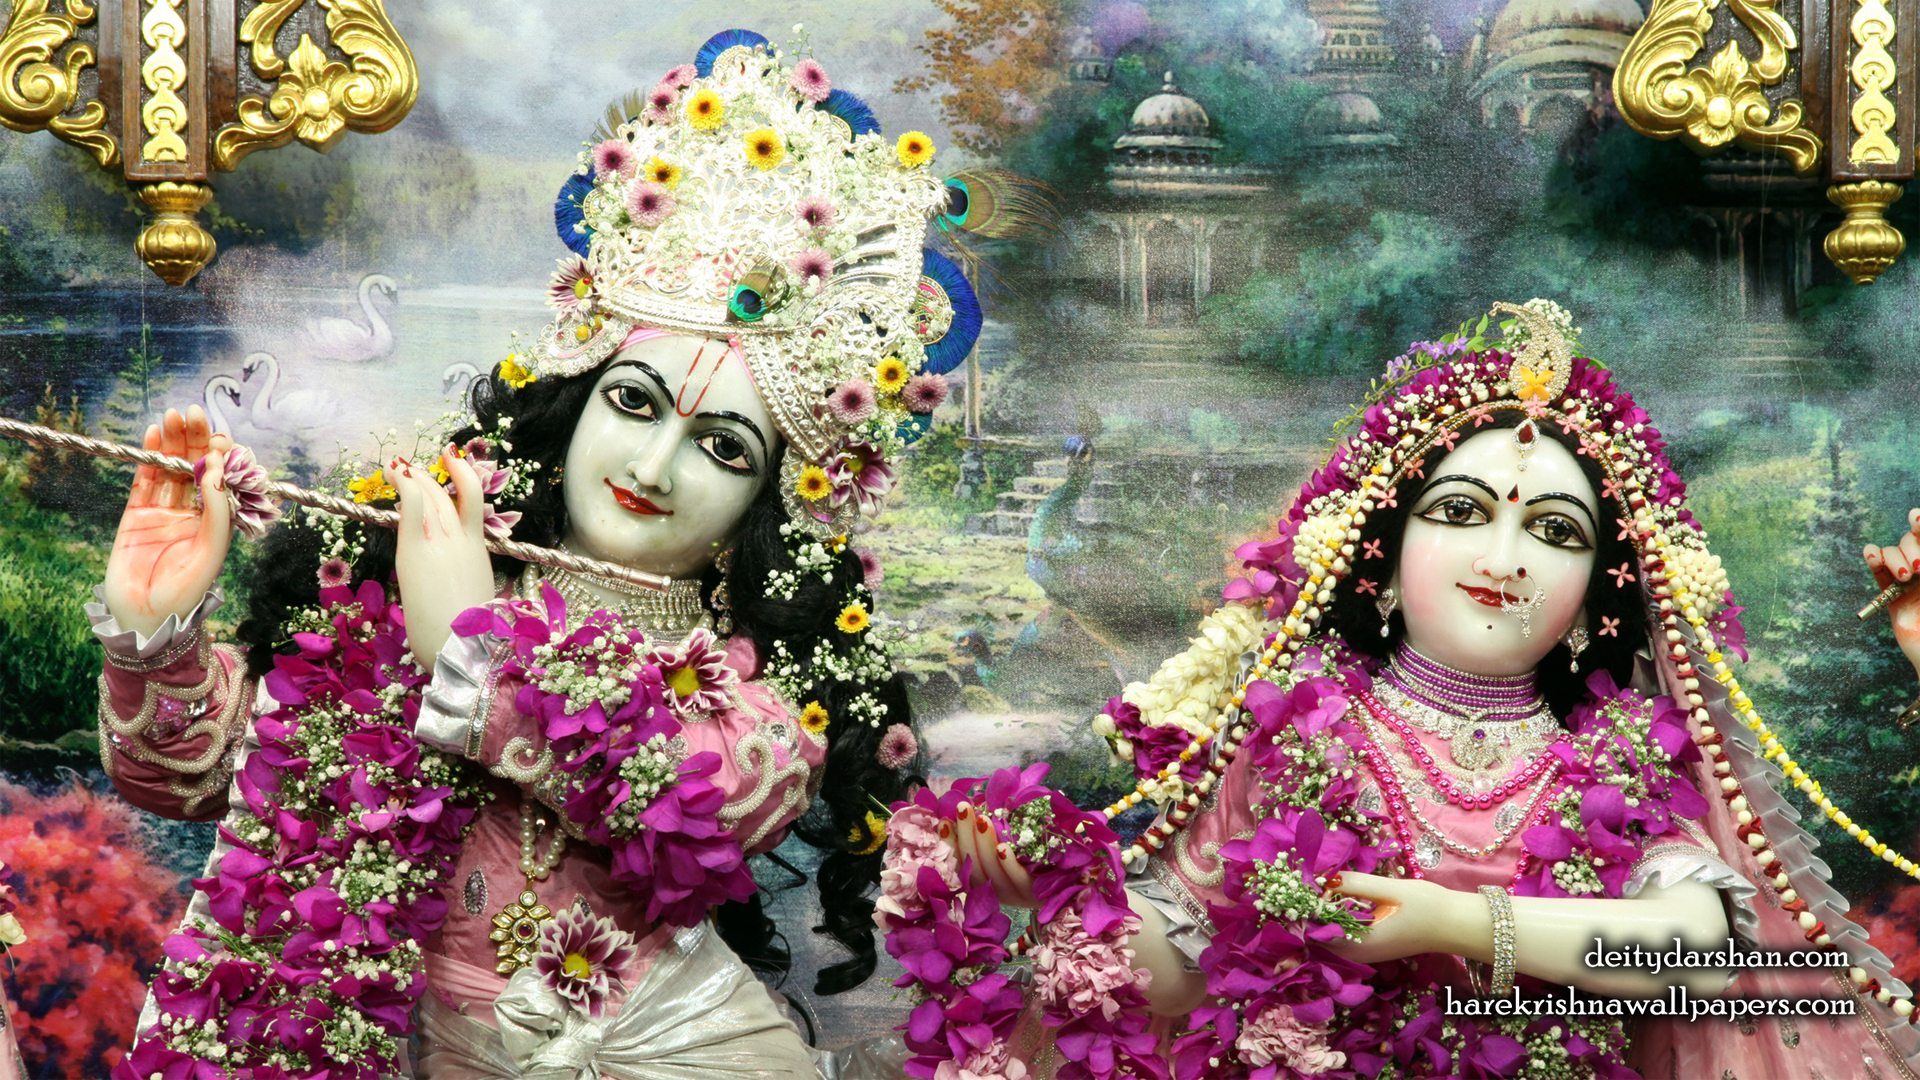 Sri Sri Radha Gopinath Close up Wallpaper (051) Size 1920x1080 Download